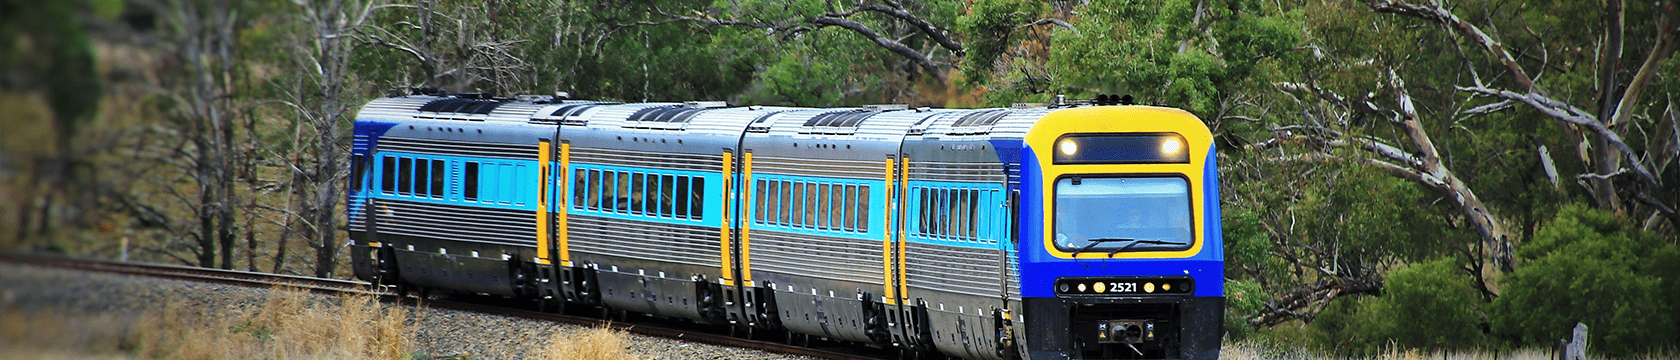 Country Regional Network train on track